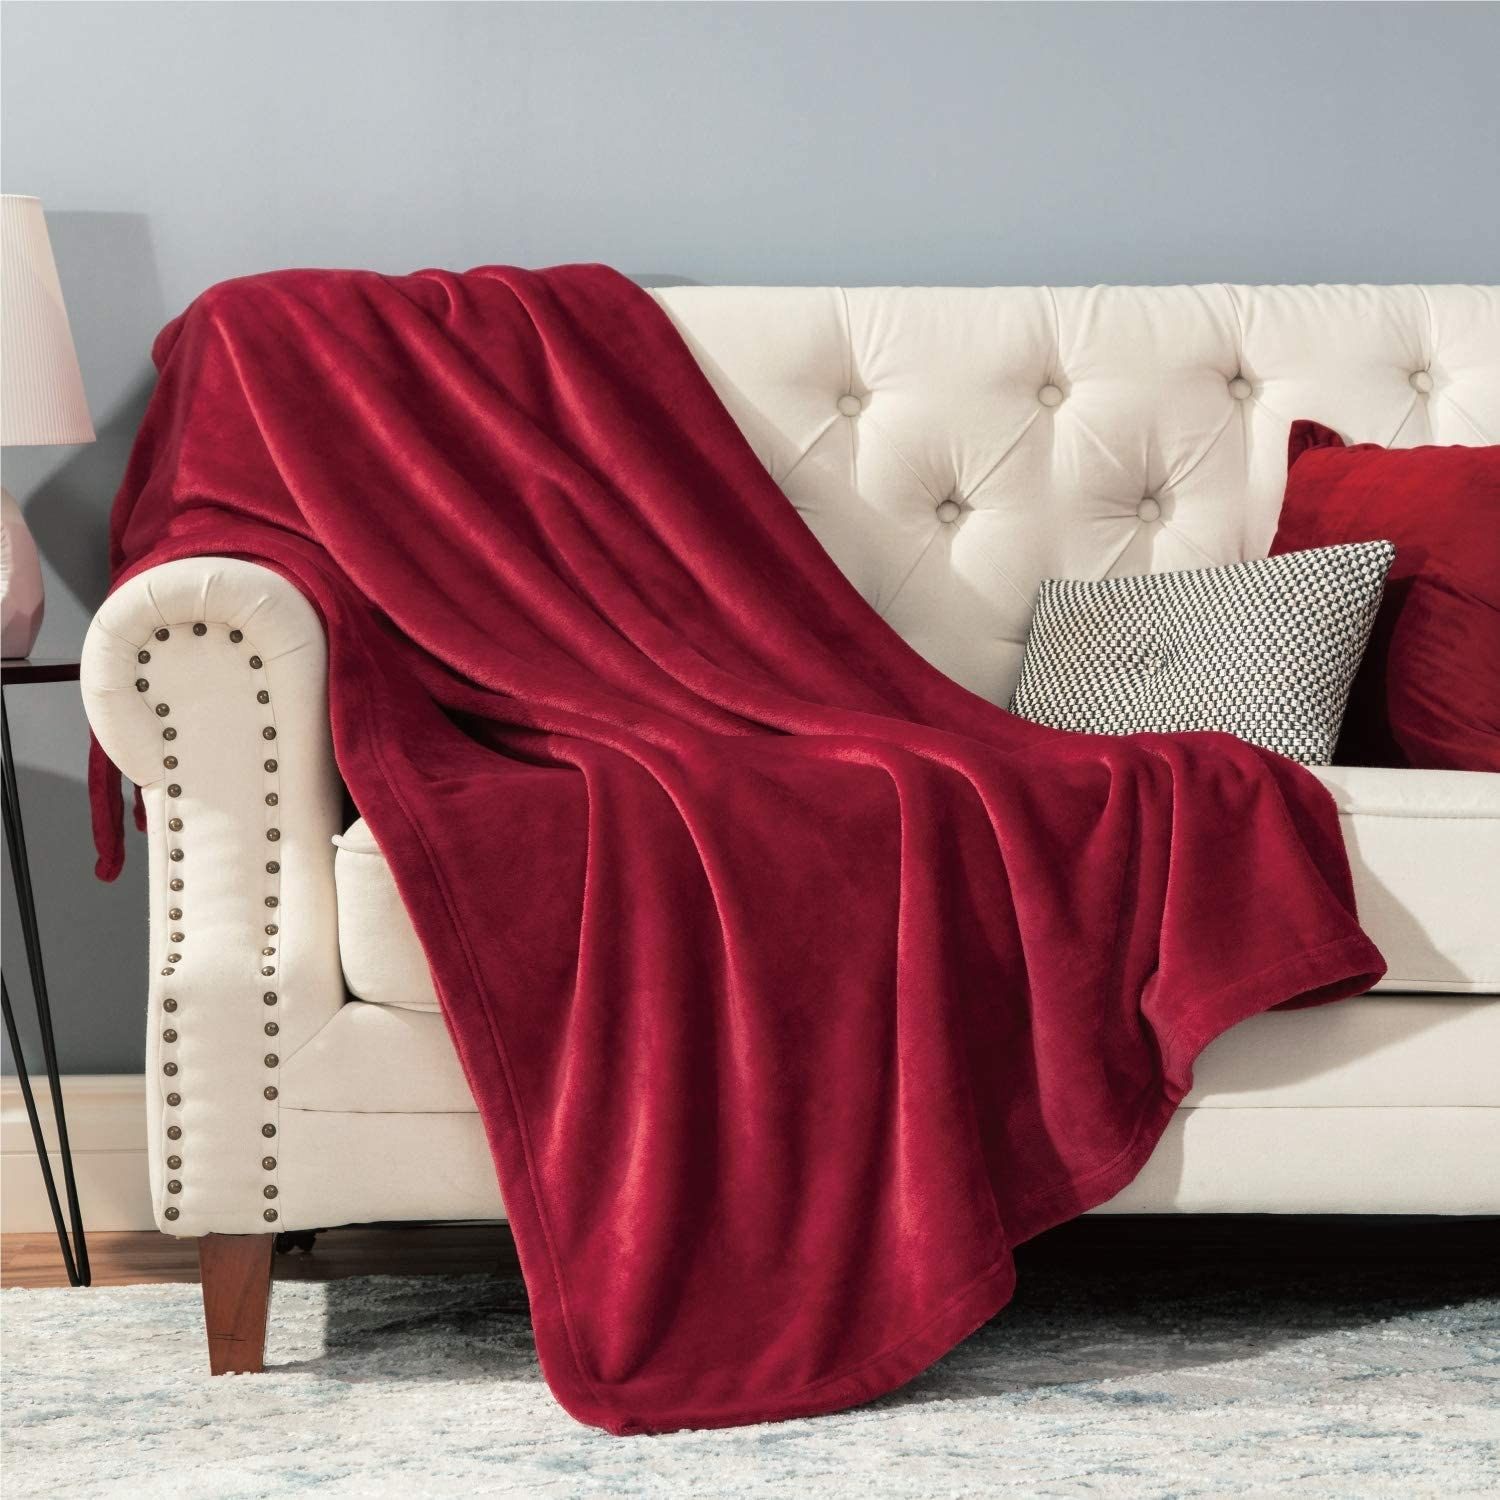 A fluffy throw is draped across a couch with pillows on it